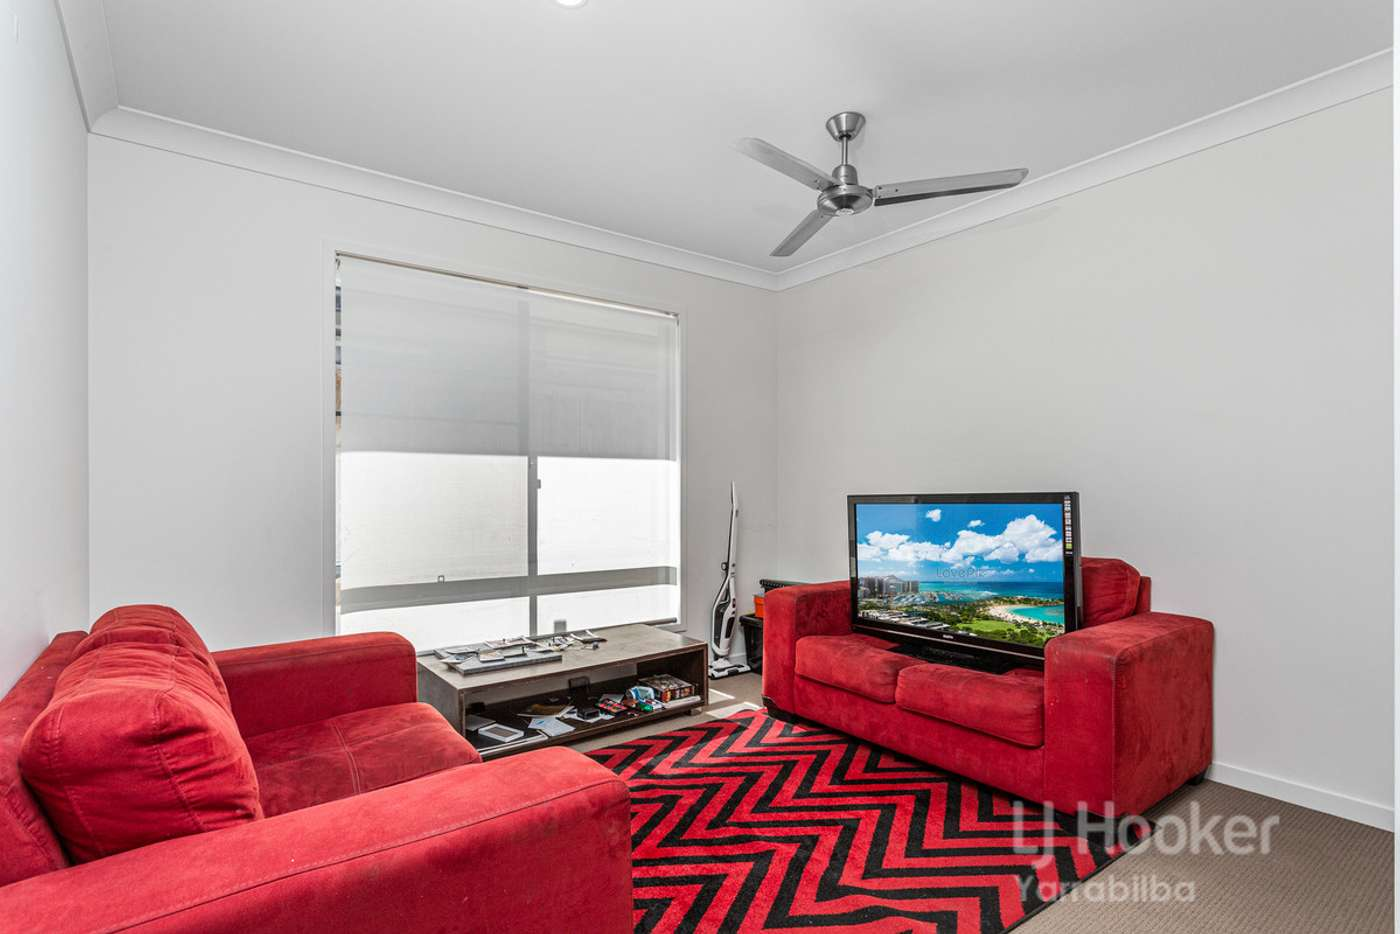 Fifth view of Homely house listing, 4 Flint Street, Yarrabilba QLD 4207